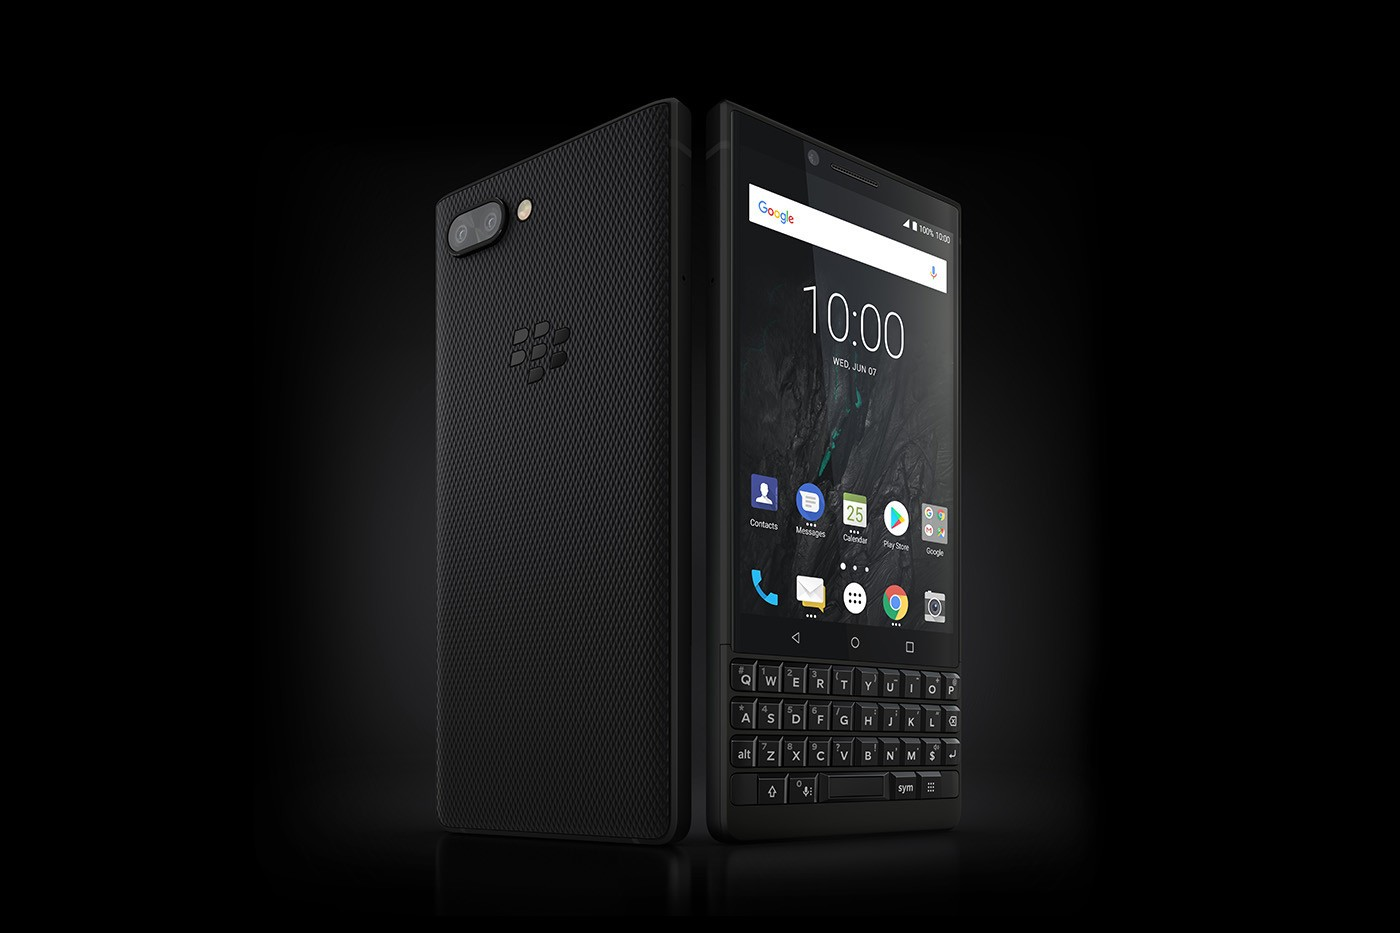 blackberry-key2-press-sized-black